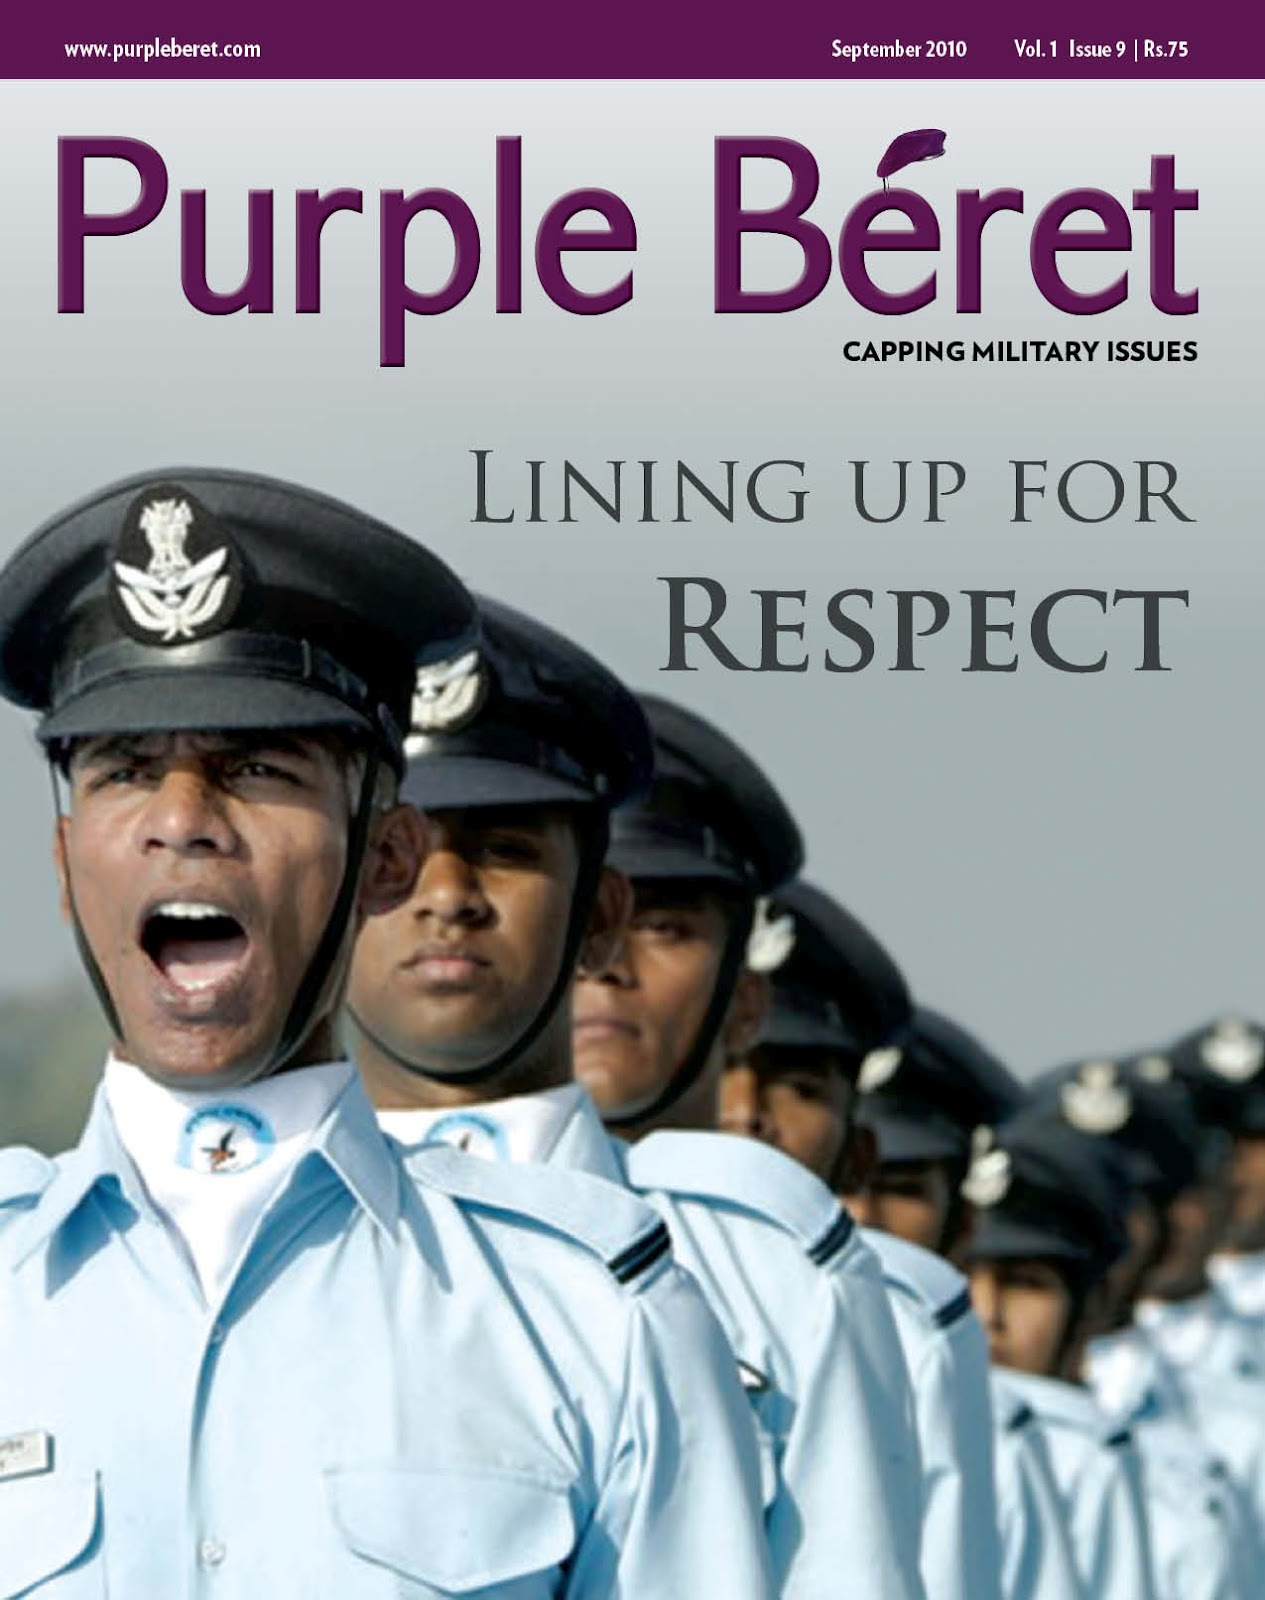 Essay On Respect In The Military